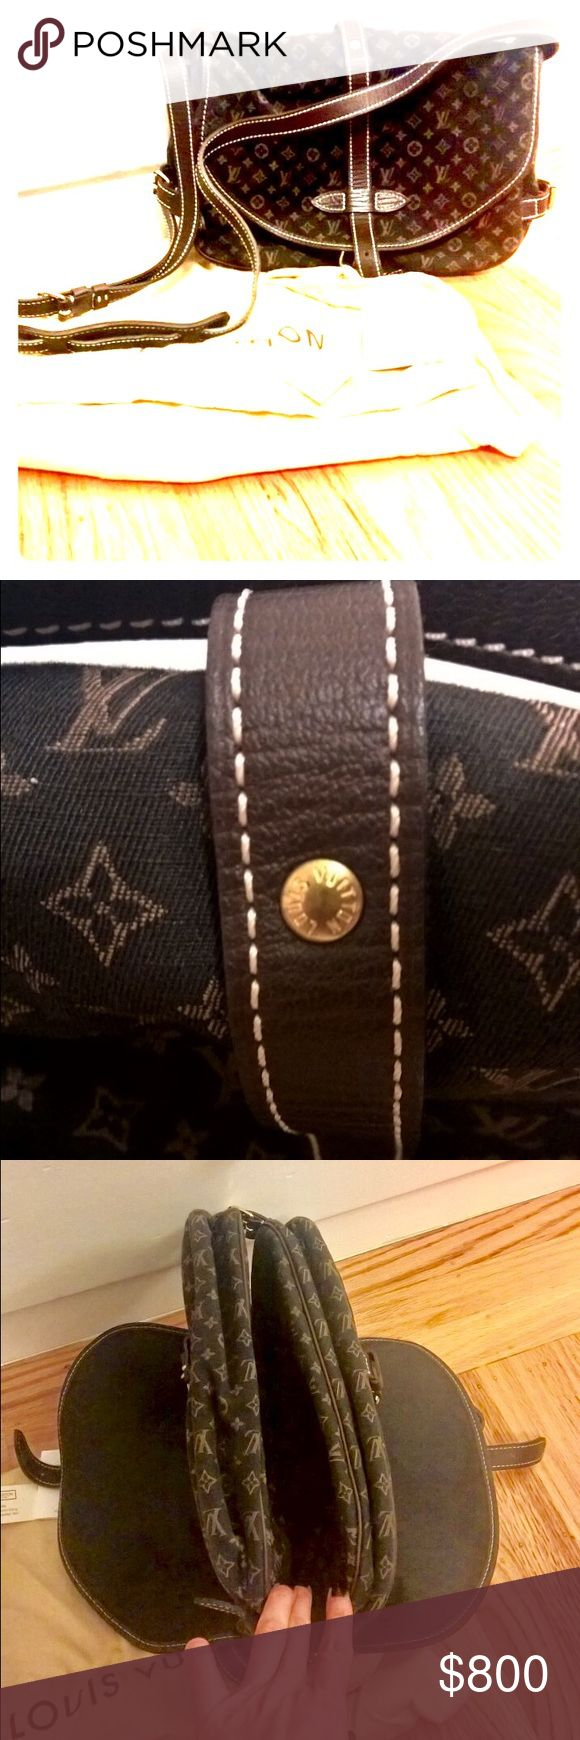 100% Authentic LV Mini Monogram Canvas Saumur bag A timeless, classic, long lasting Authentic Louis Vuitton Mini Monogram Brown Canvas Saumur cross-body bag.  Resistant canvas that has a double compartment which each has a buckle closure and adjustable long shoulder strap.  It is made of 58% cotton, 24% linen and 18% polyamide.  Purchased at $1250, which currently need to call for inquiry on LV official website. Signature elegant piece that carries modern twist cross-body bag. Extremely good…